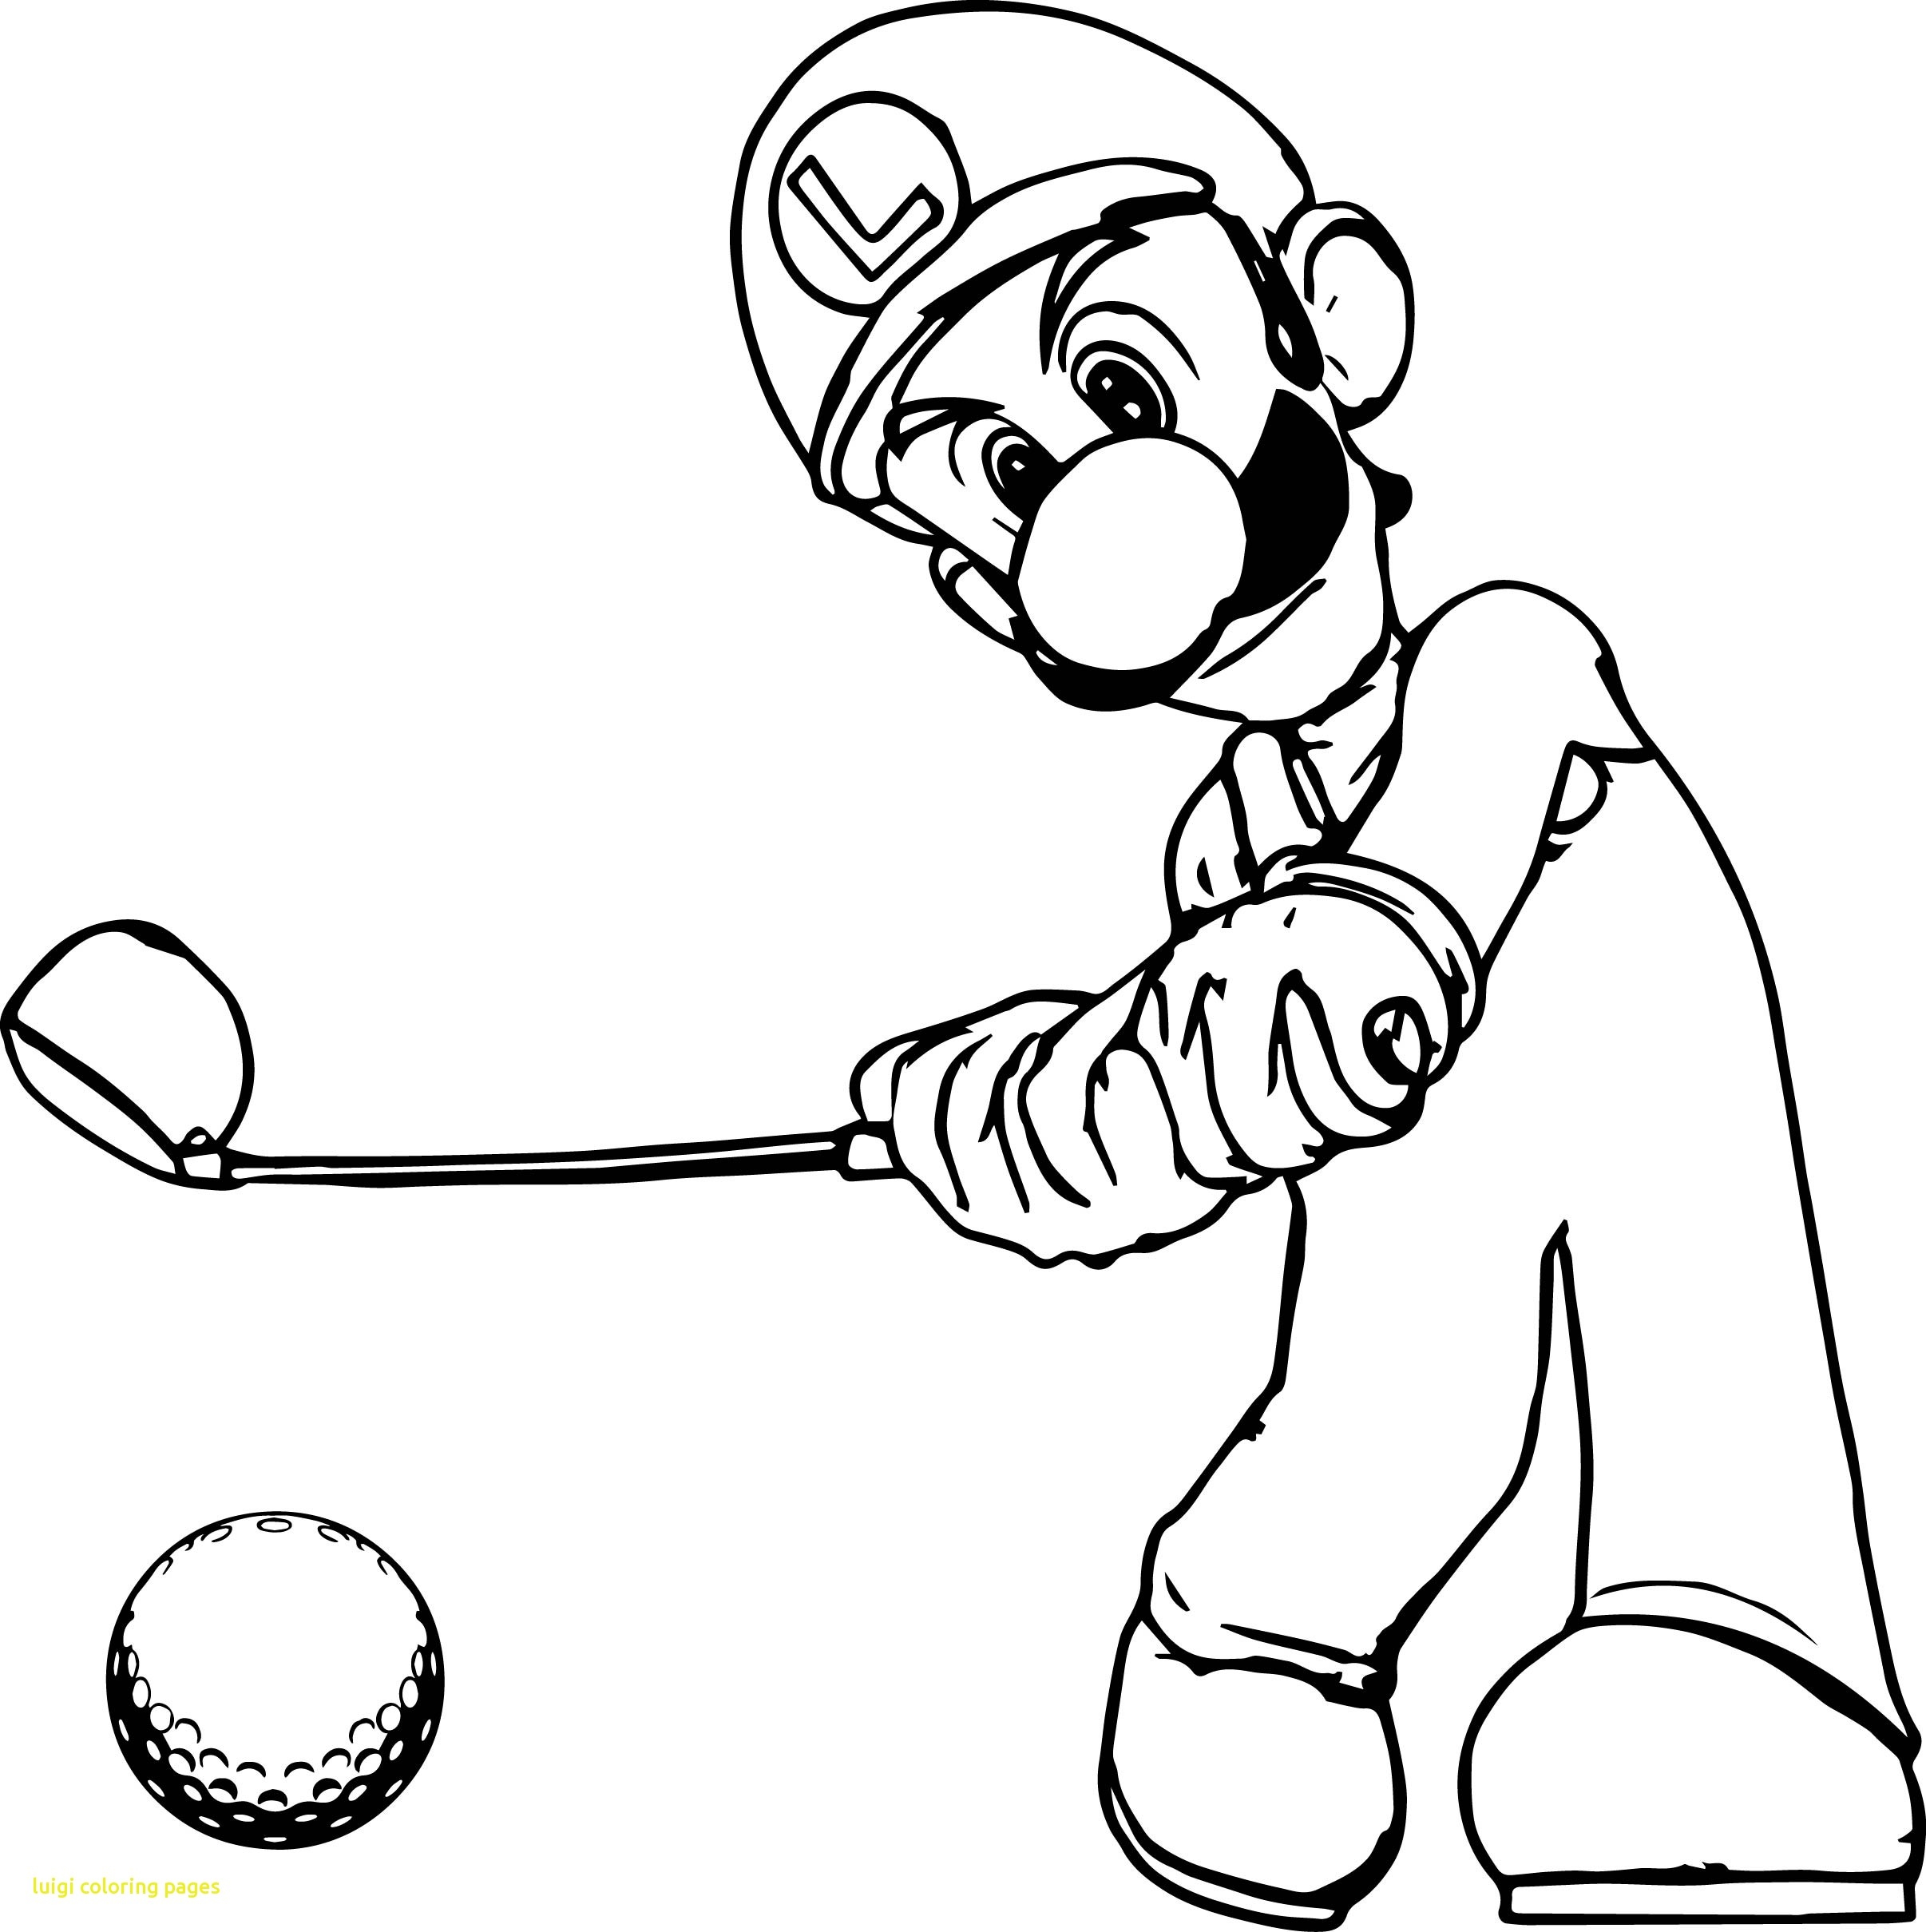 baby luigi pictures mario coloring pages and rosalina coloring home pictures luigi baby